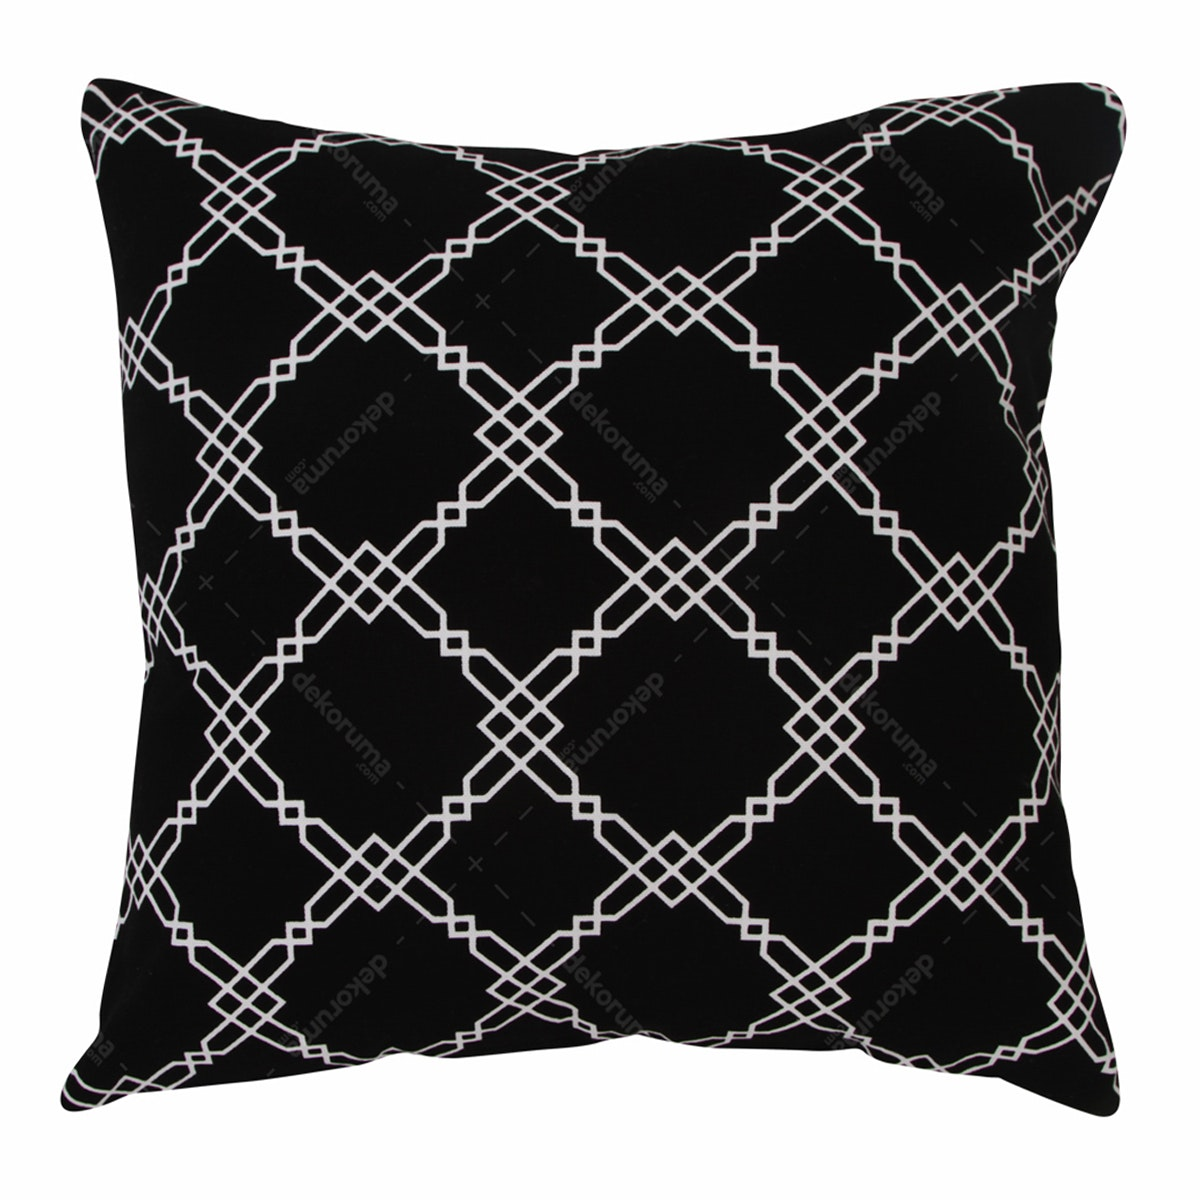 Le Noir Project Gricke Black Cushion Cover 40x40cm